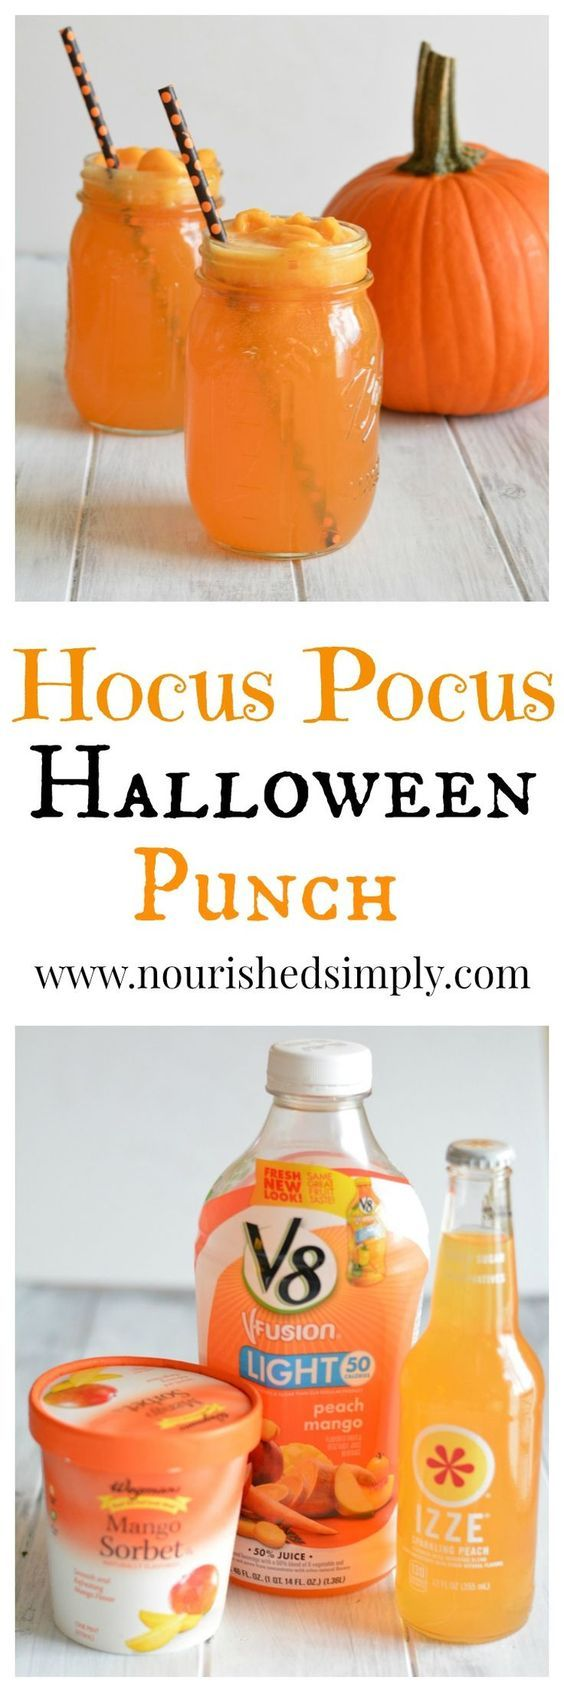 Hocus Pocus Halloween Punch | fun and easy party drink idea for fall or Halloween. All natural ingredients without food coloring.